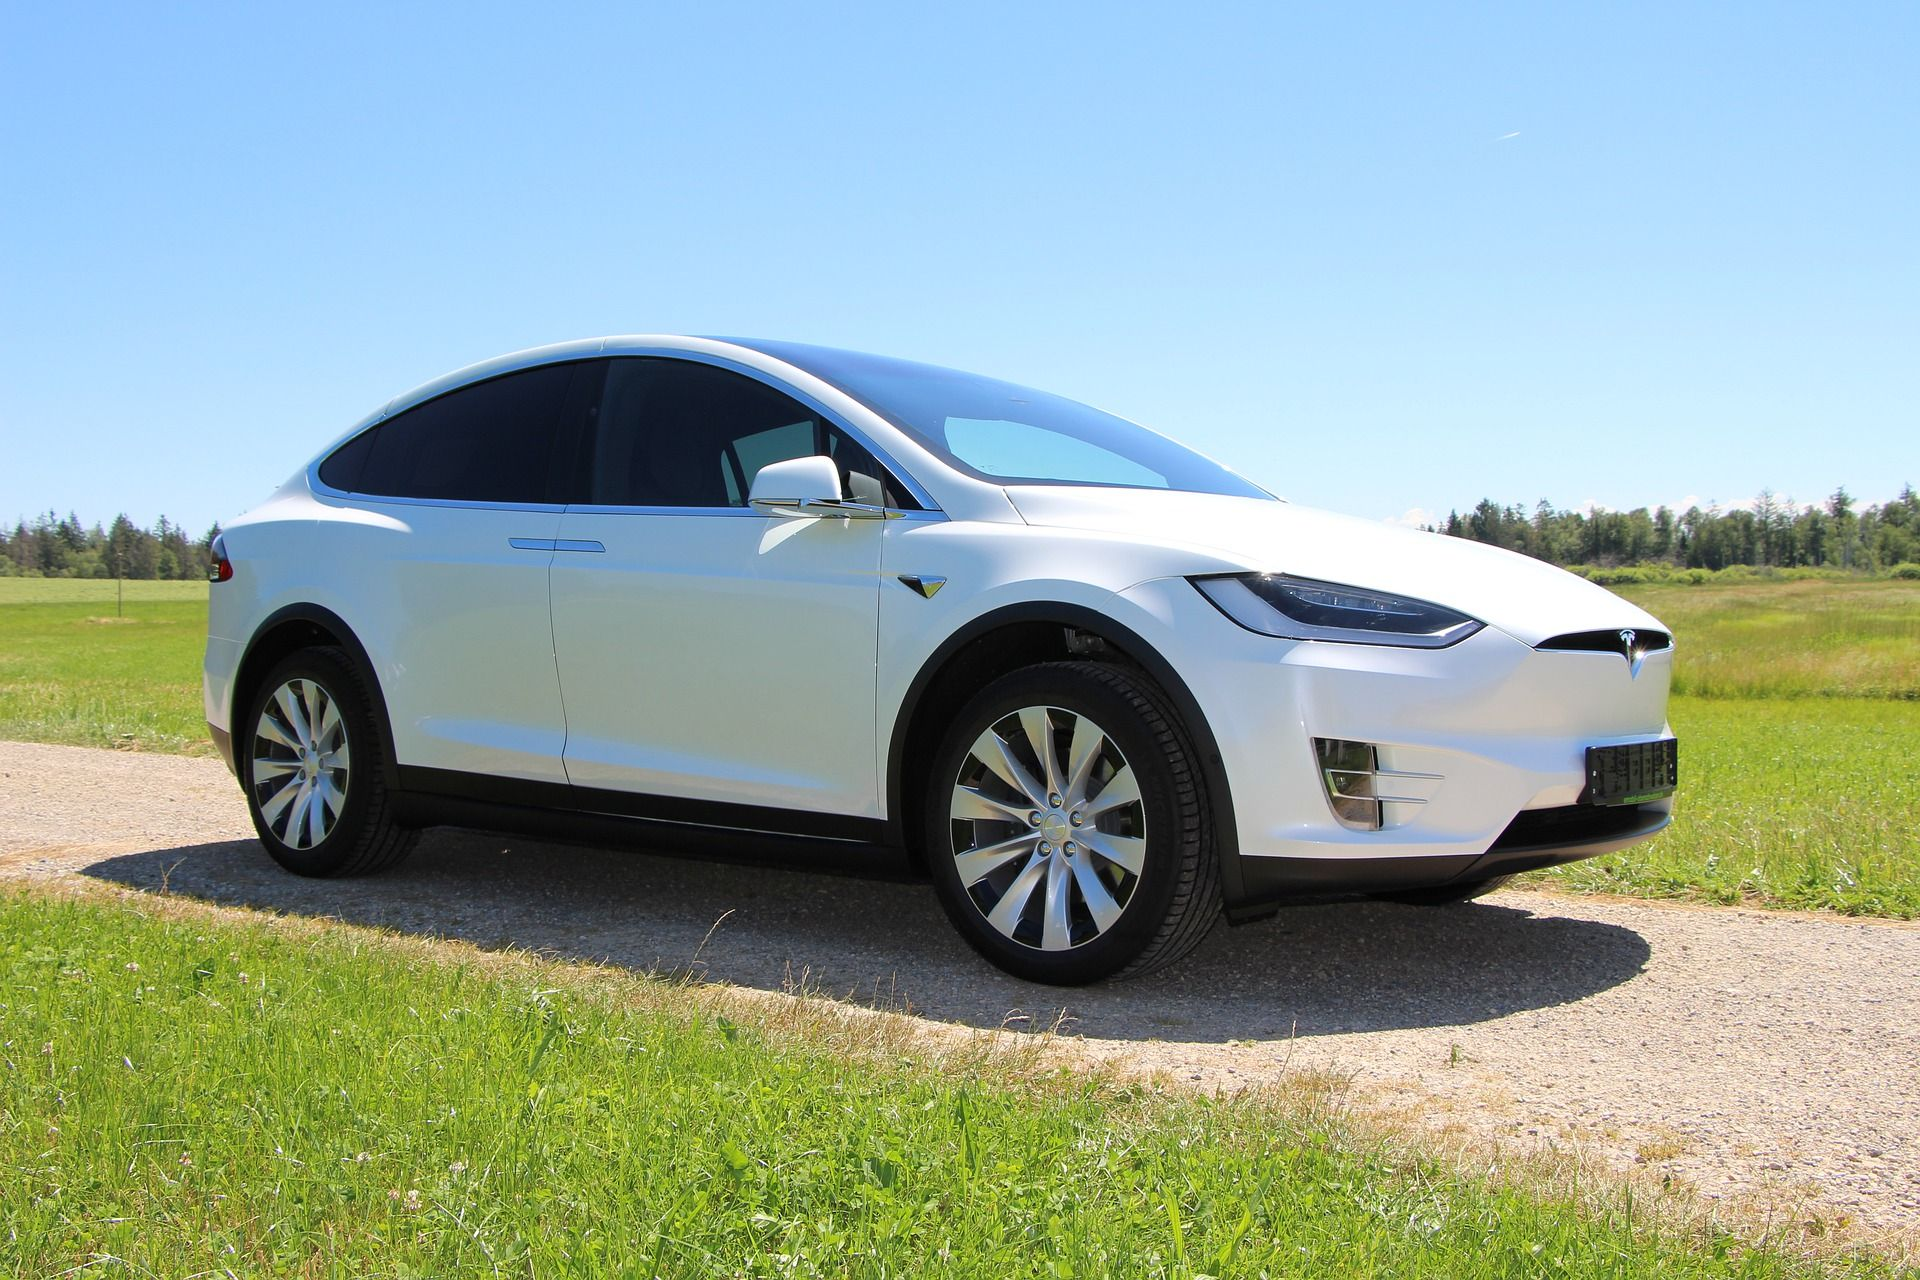 Electric Cars & Chauffeurs – The Tesla Model X